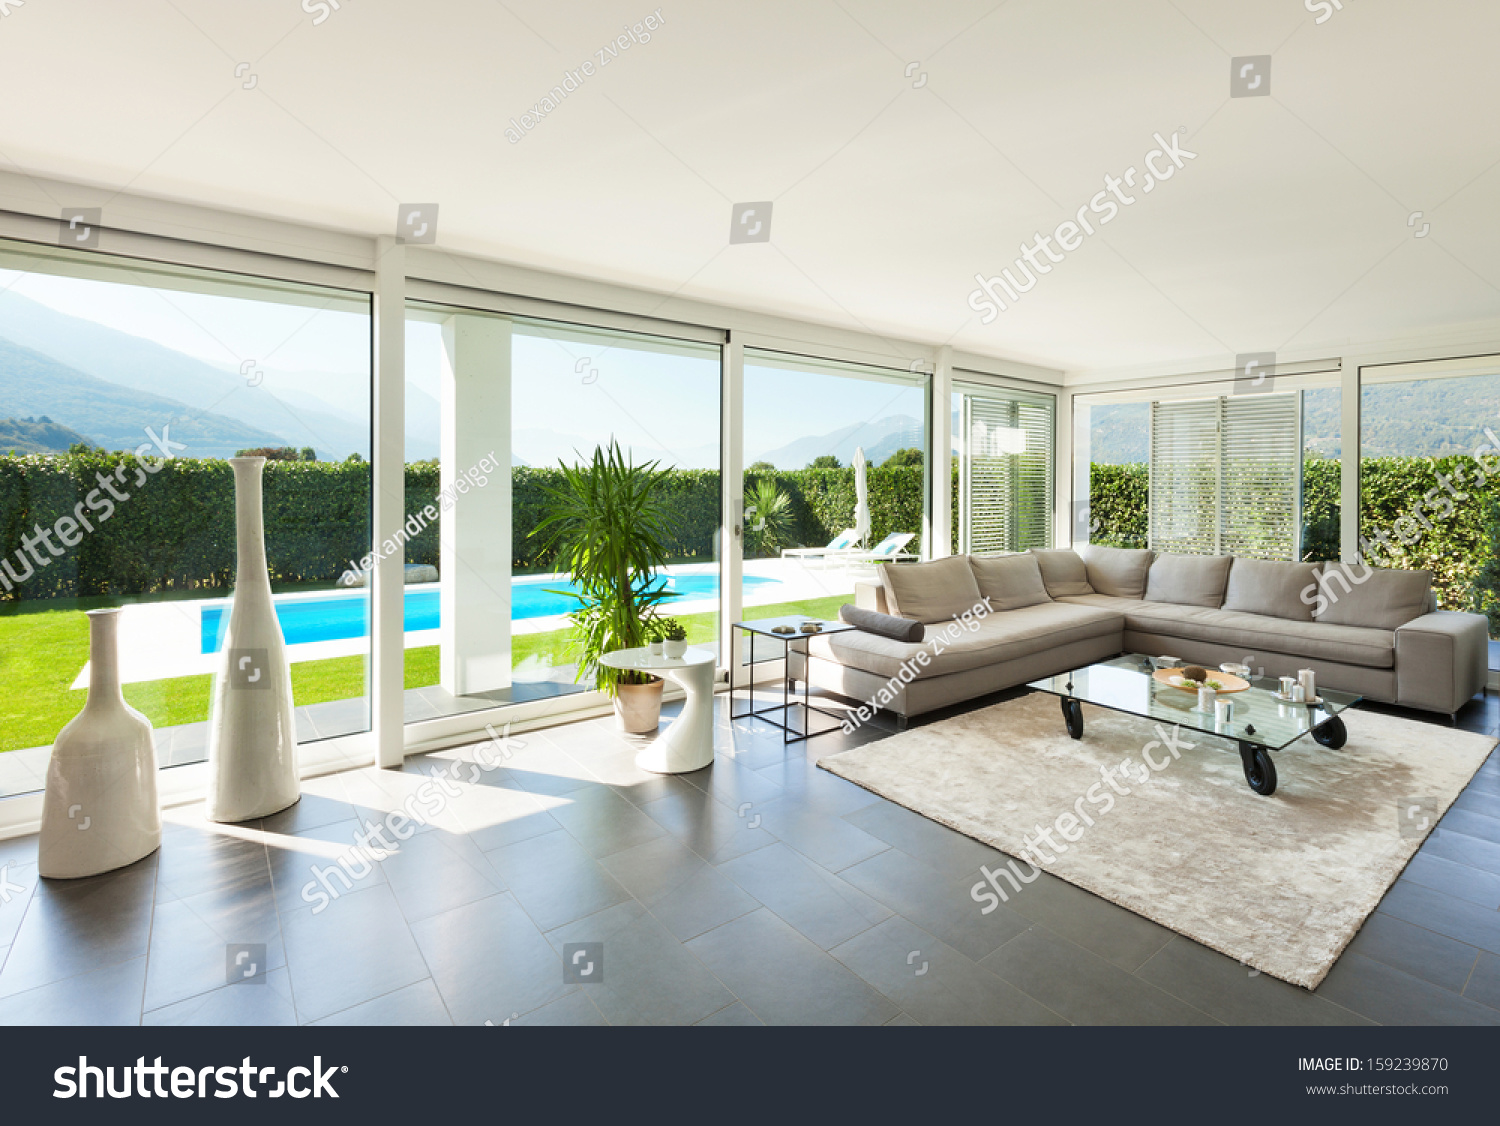 Modern villa interior beautiful living room stock photo 159239870 shutterstock - Modern villa interieur ...